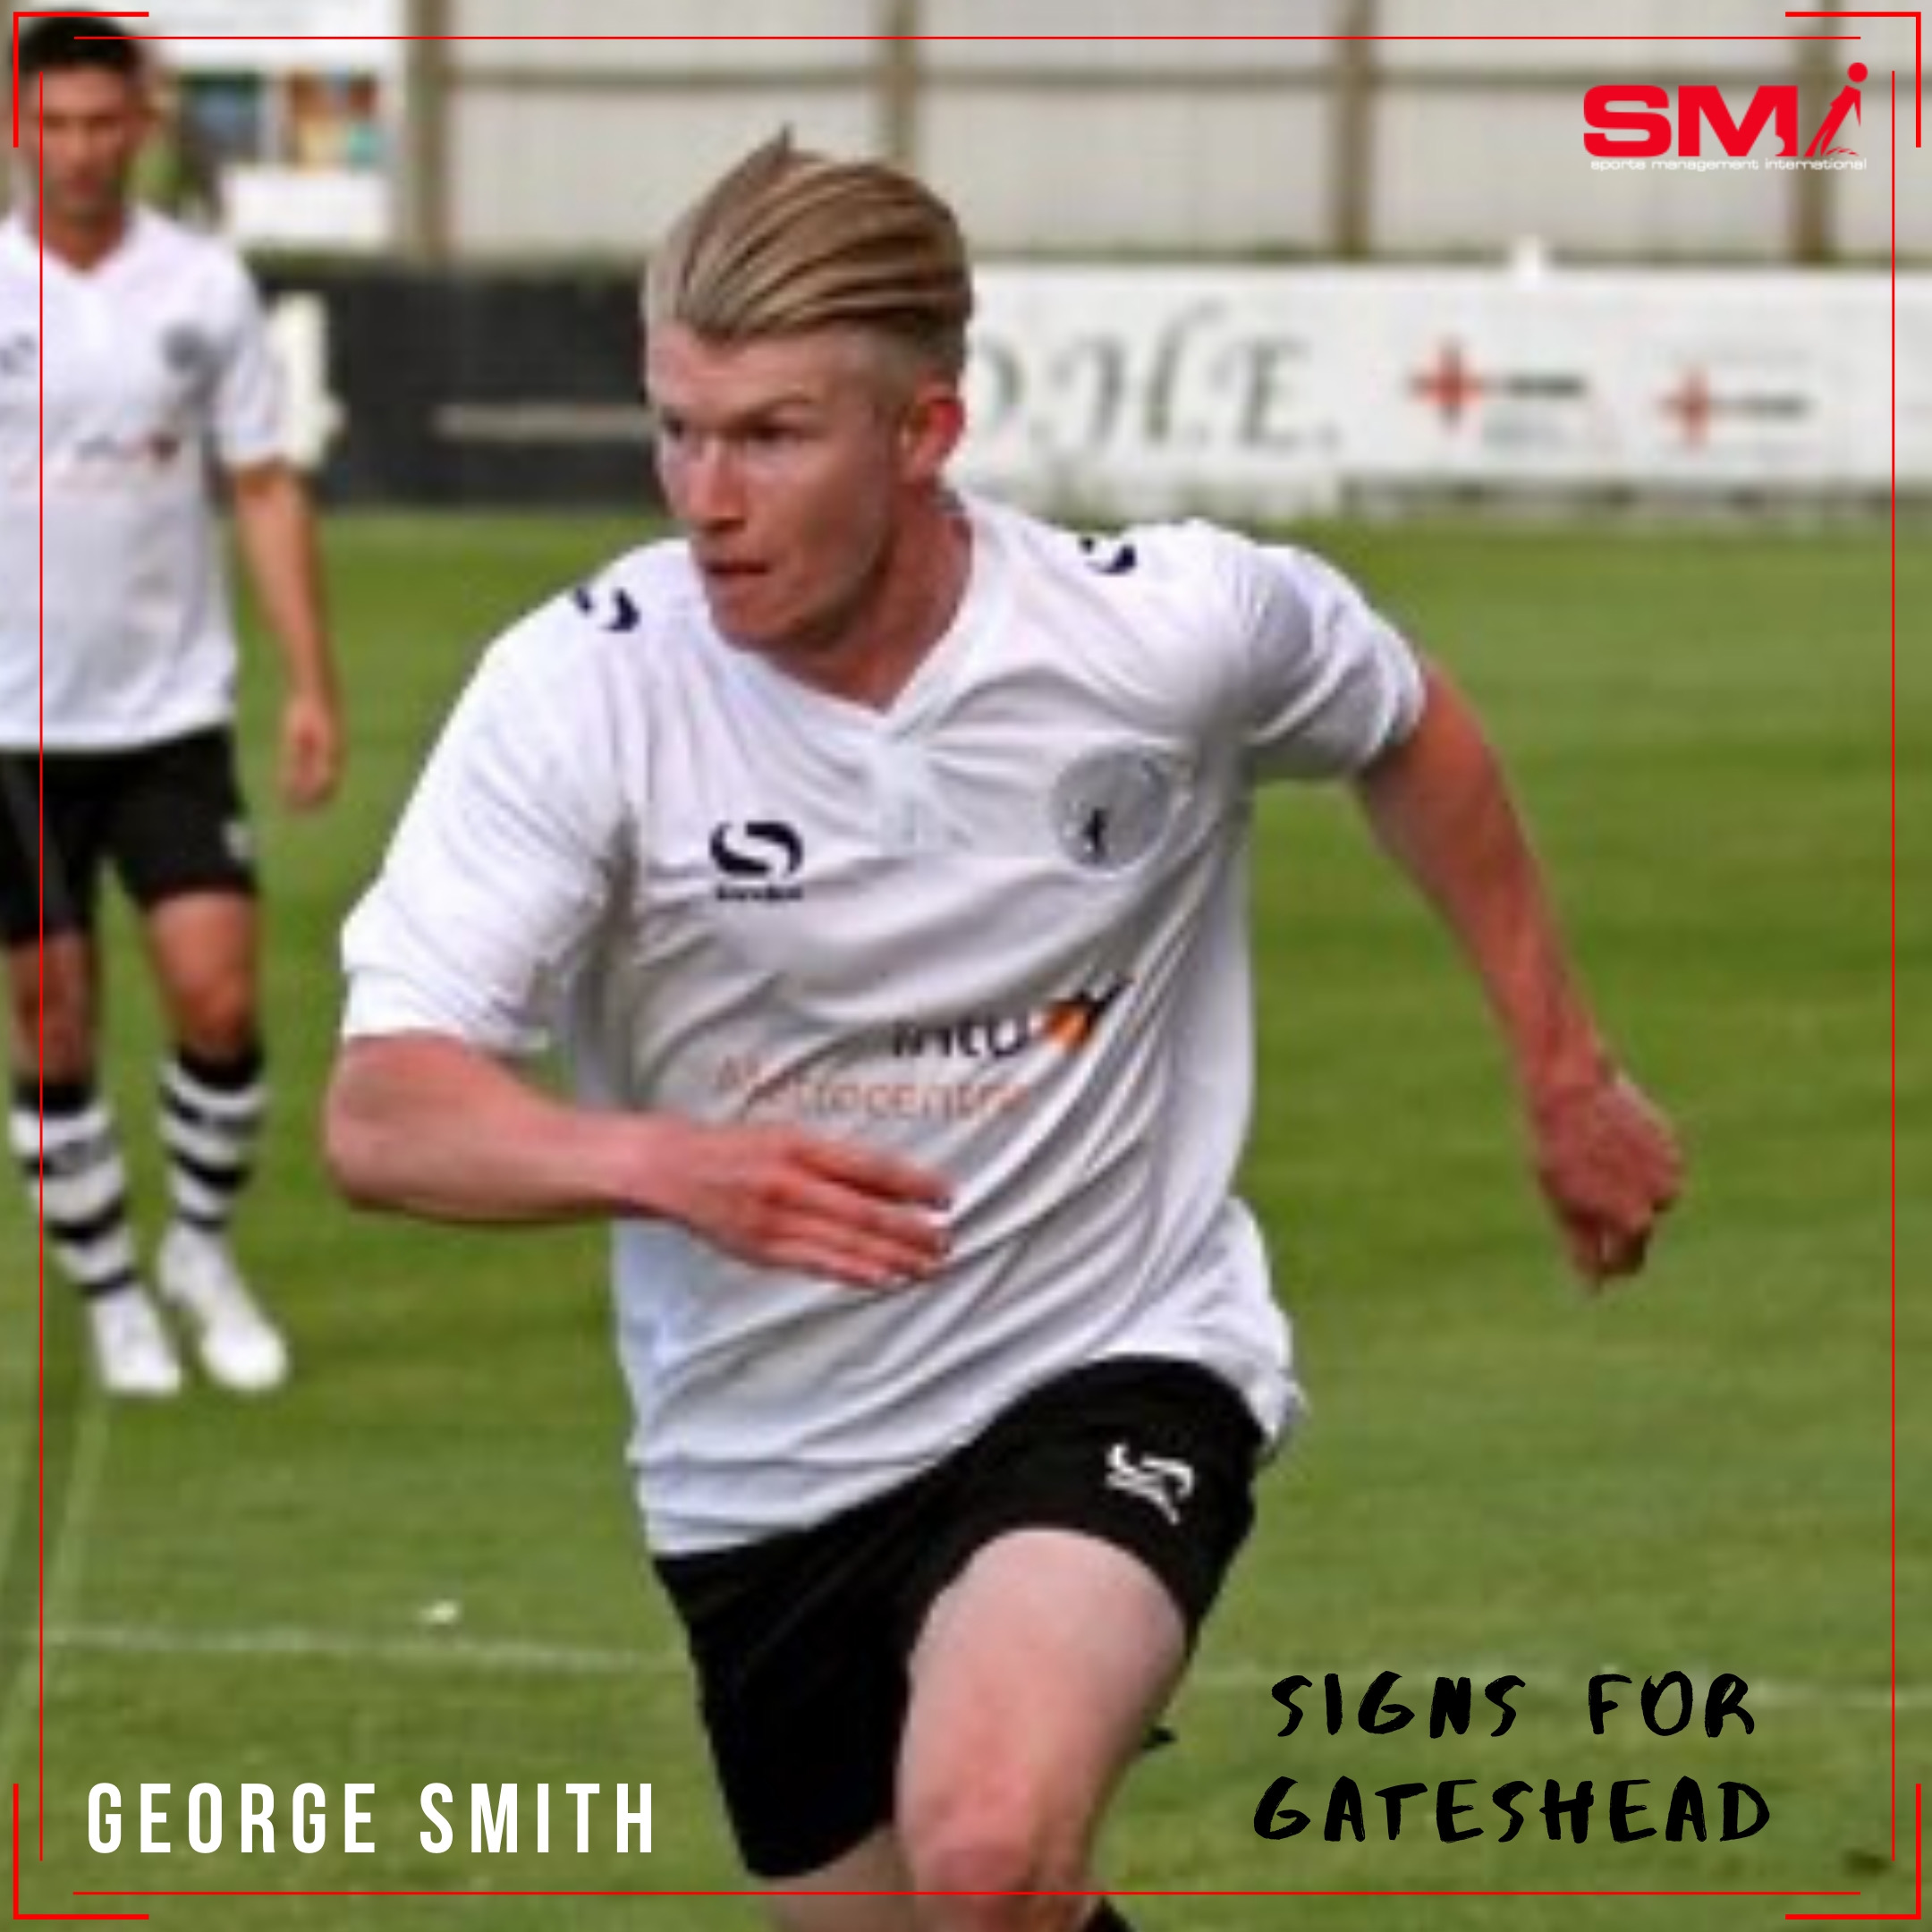 George Smith Signs for Gateshead